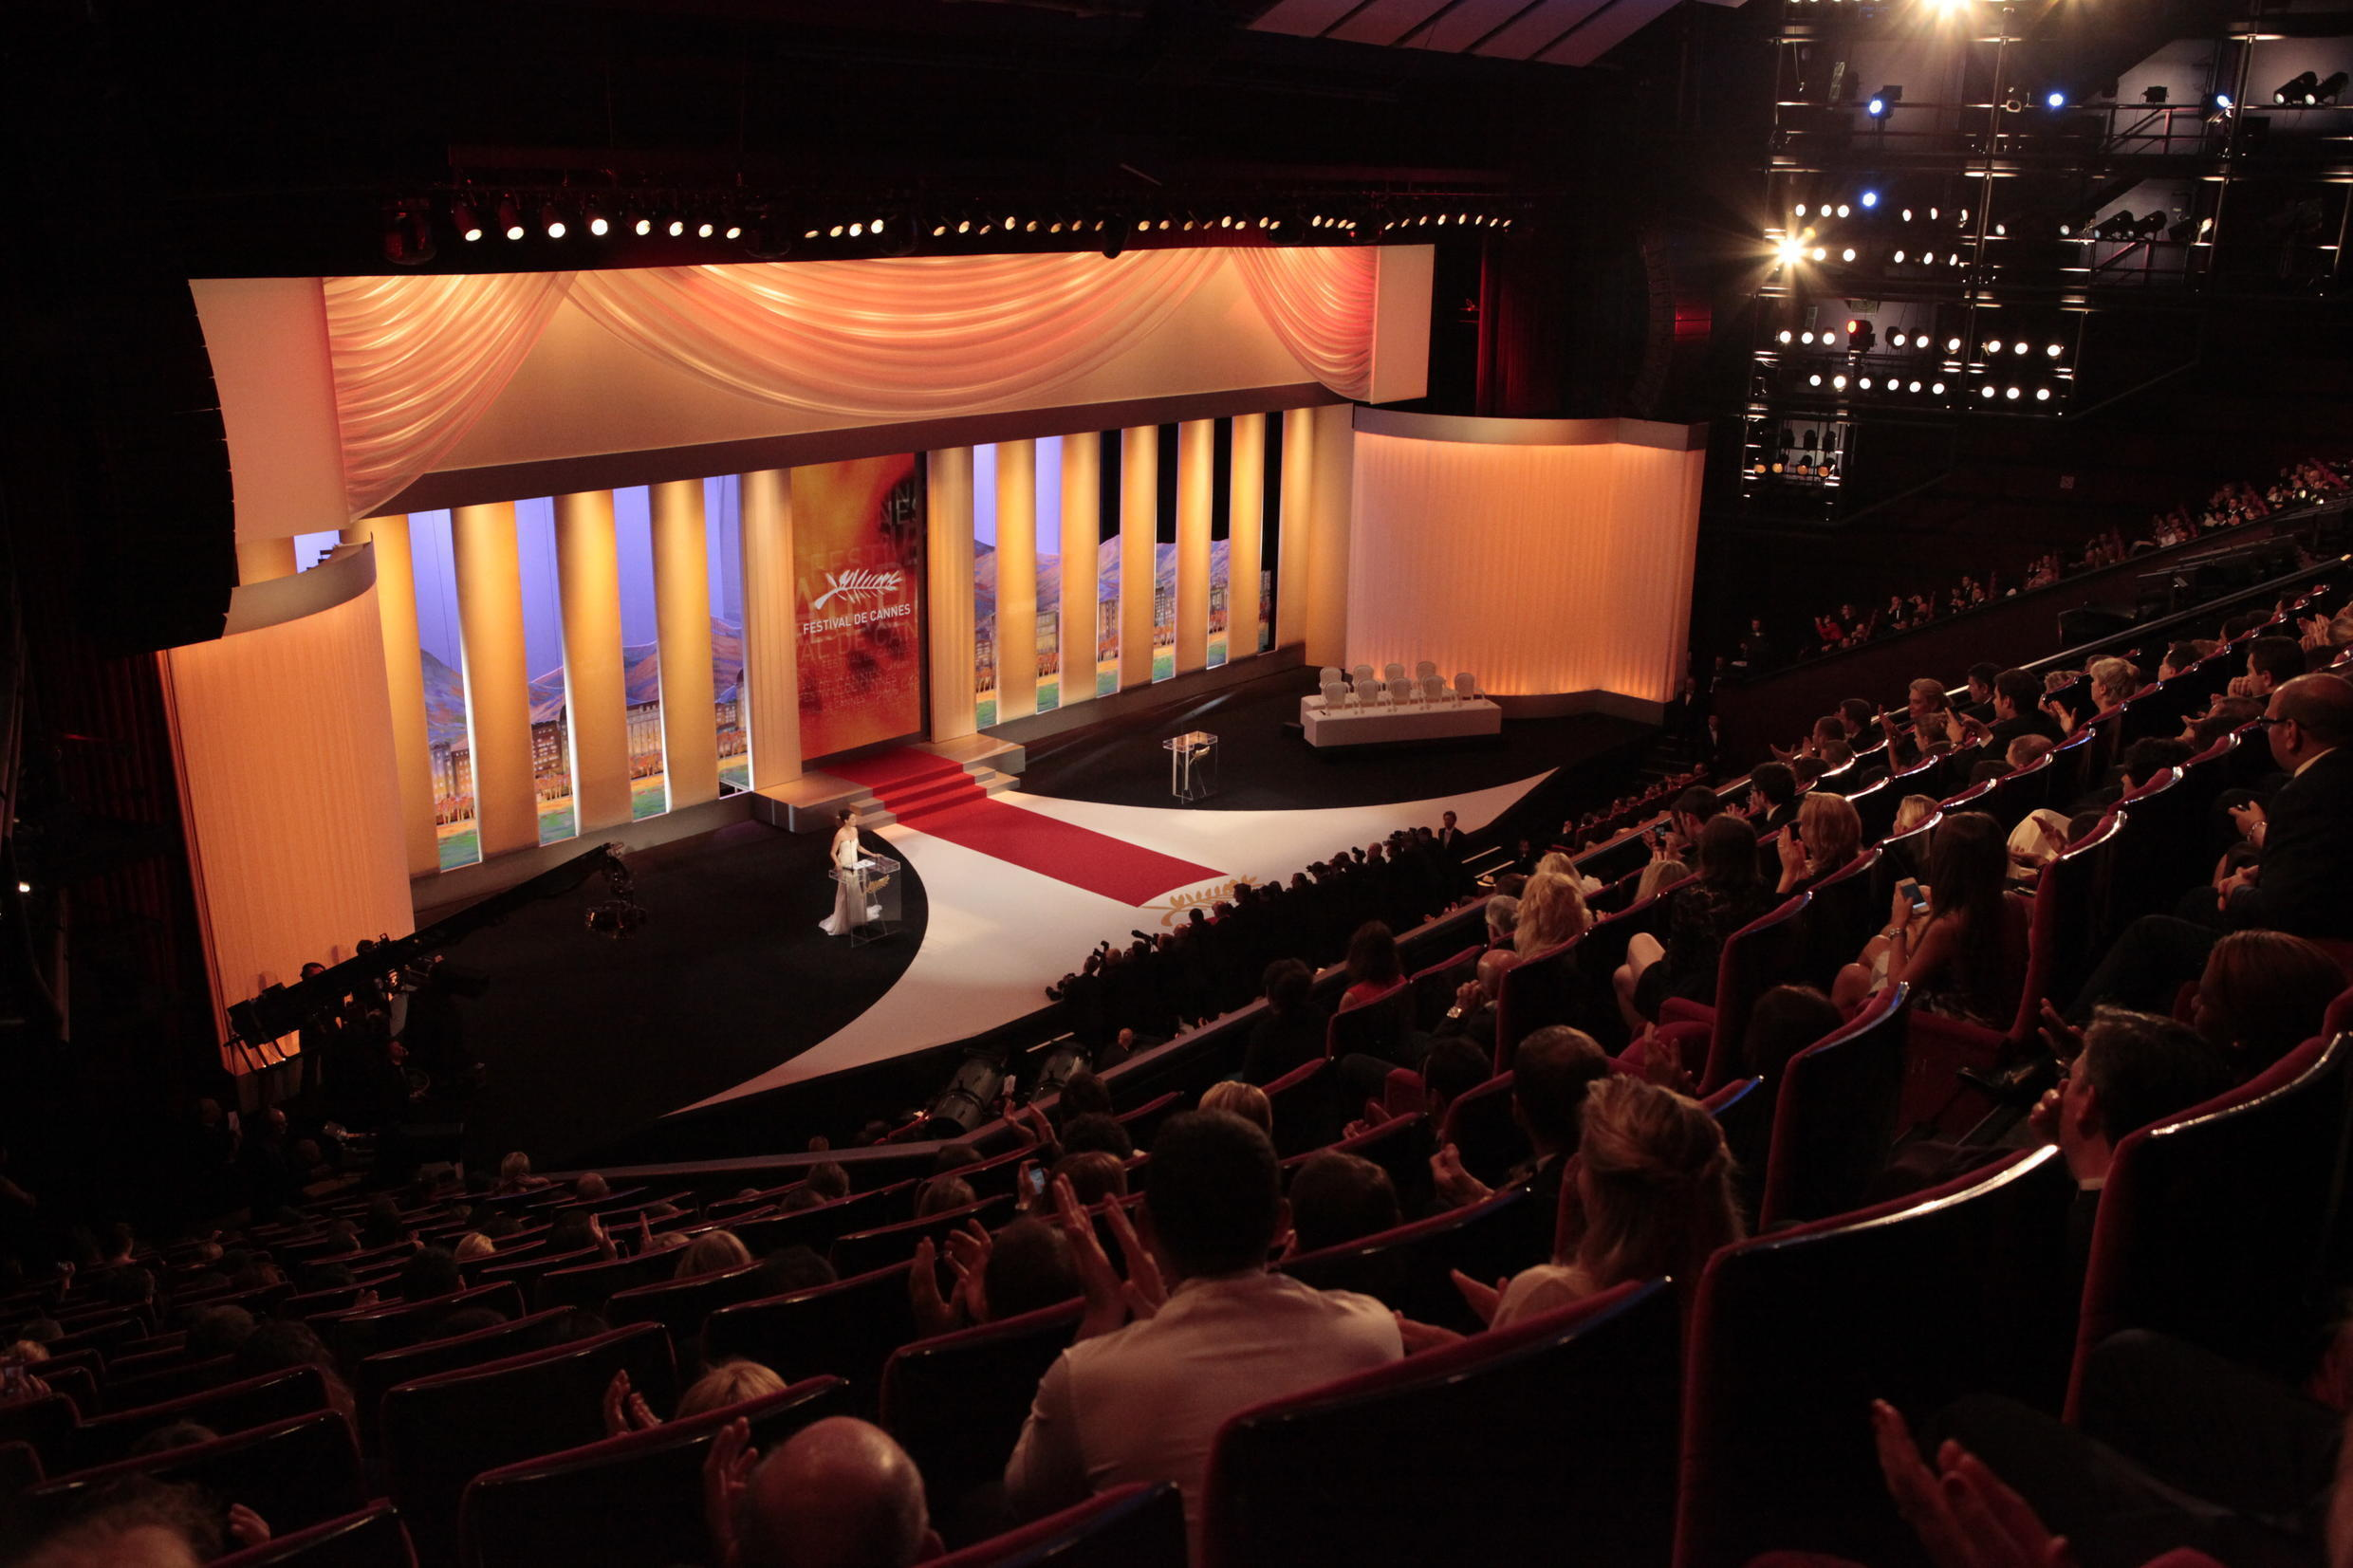 The 2015 Cannes Film Festival completes its selection